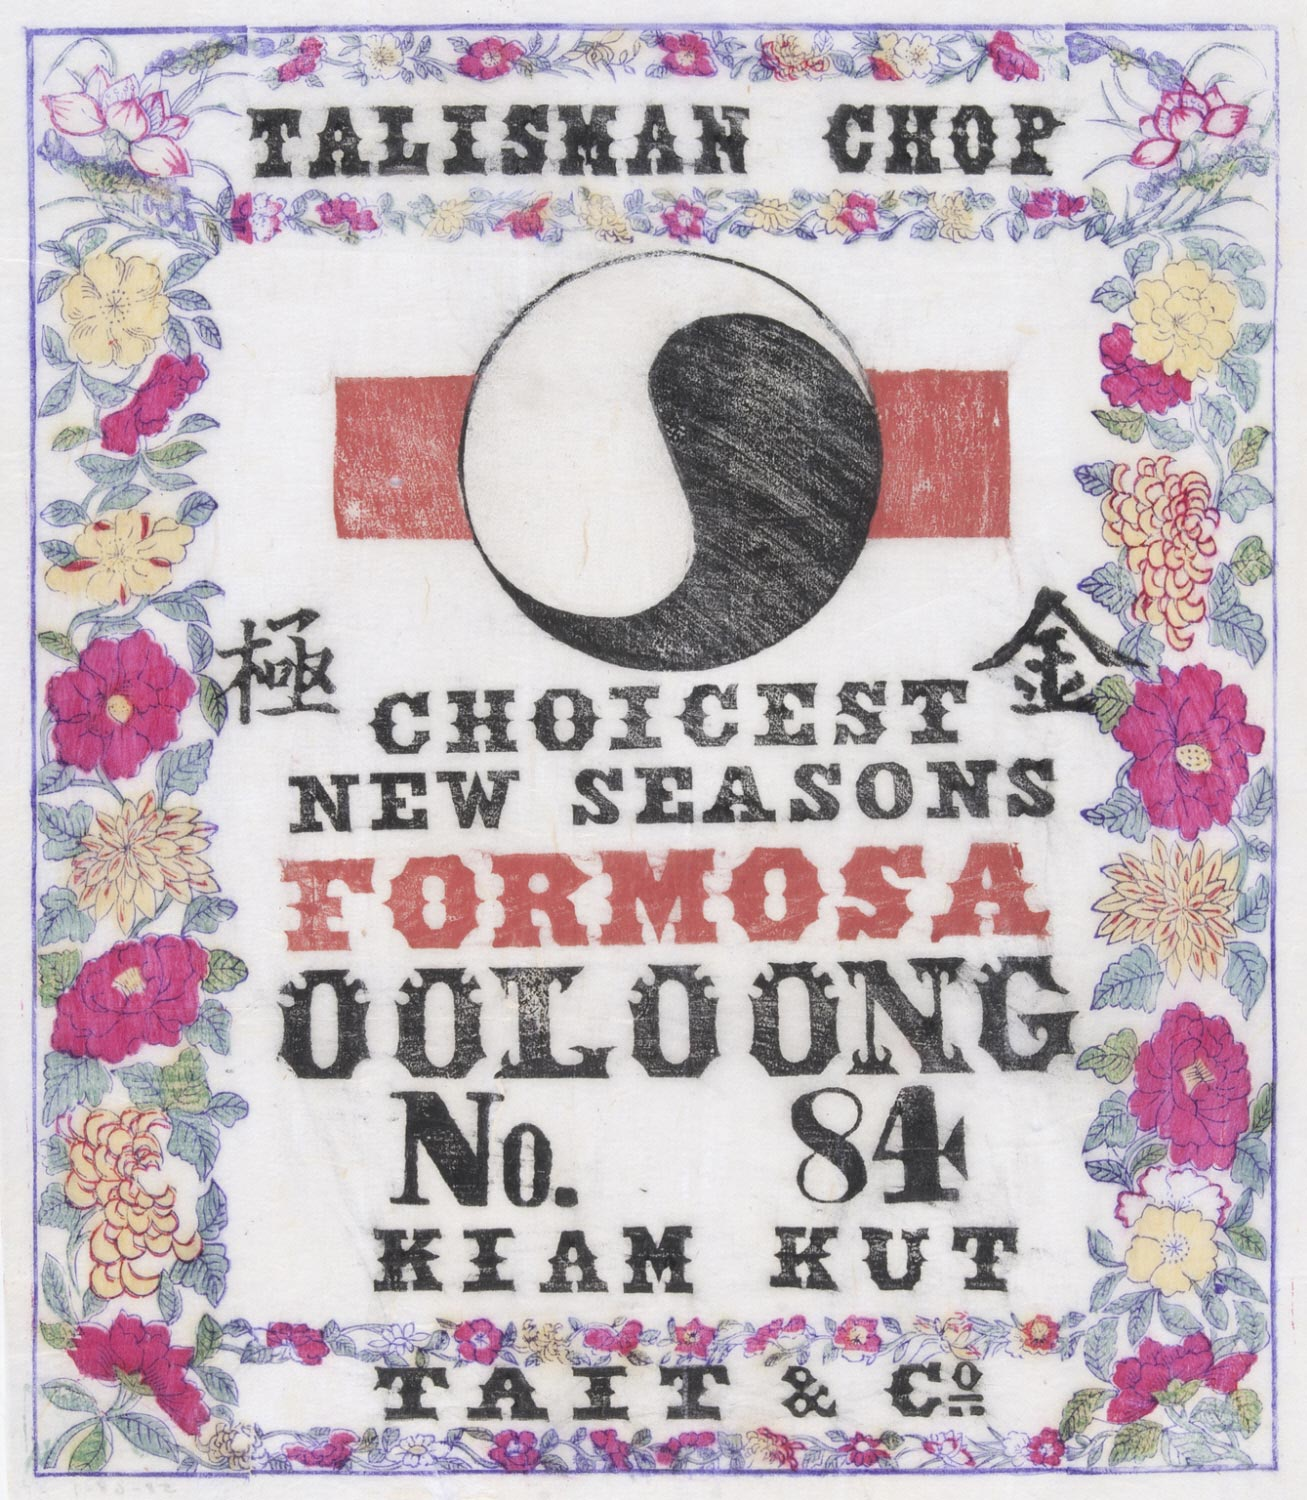 Formosa Oolong: Tea Advertisement from Tait & Co.